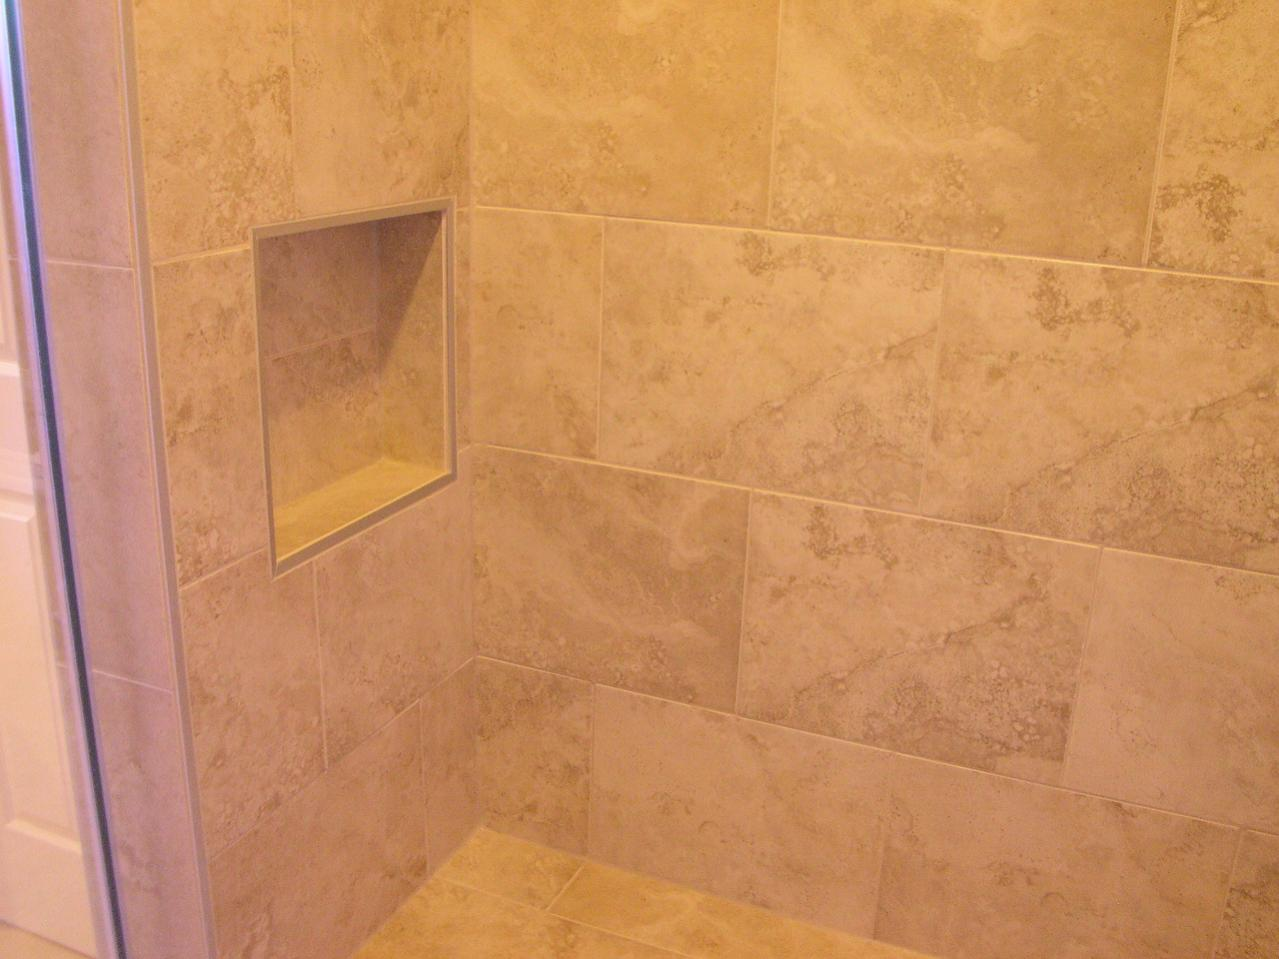 Building A Shower Bench When Using Backer Board On Walls? - Tiling ...